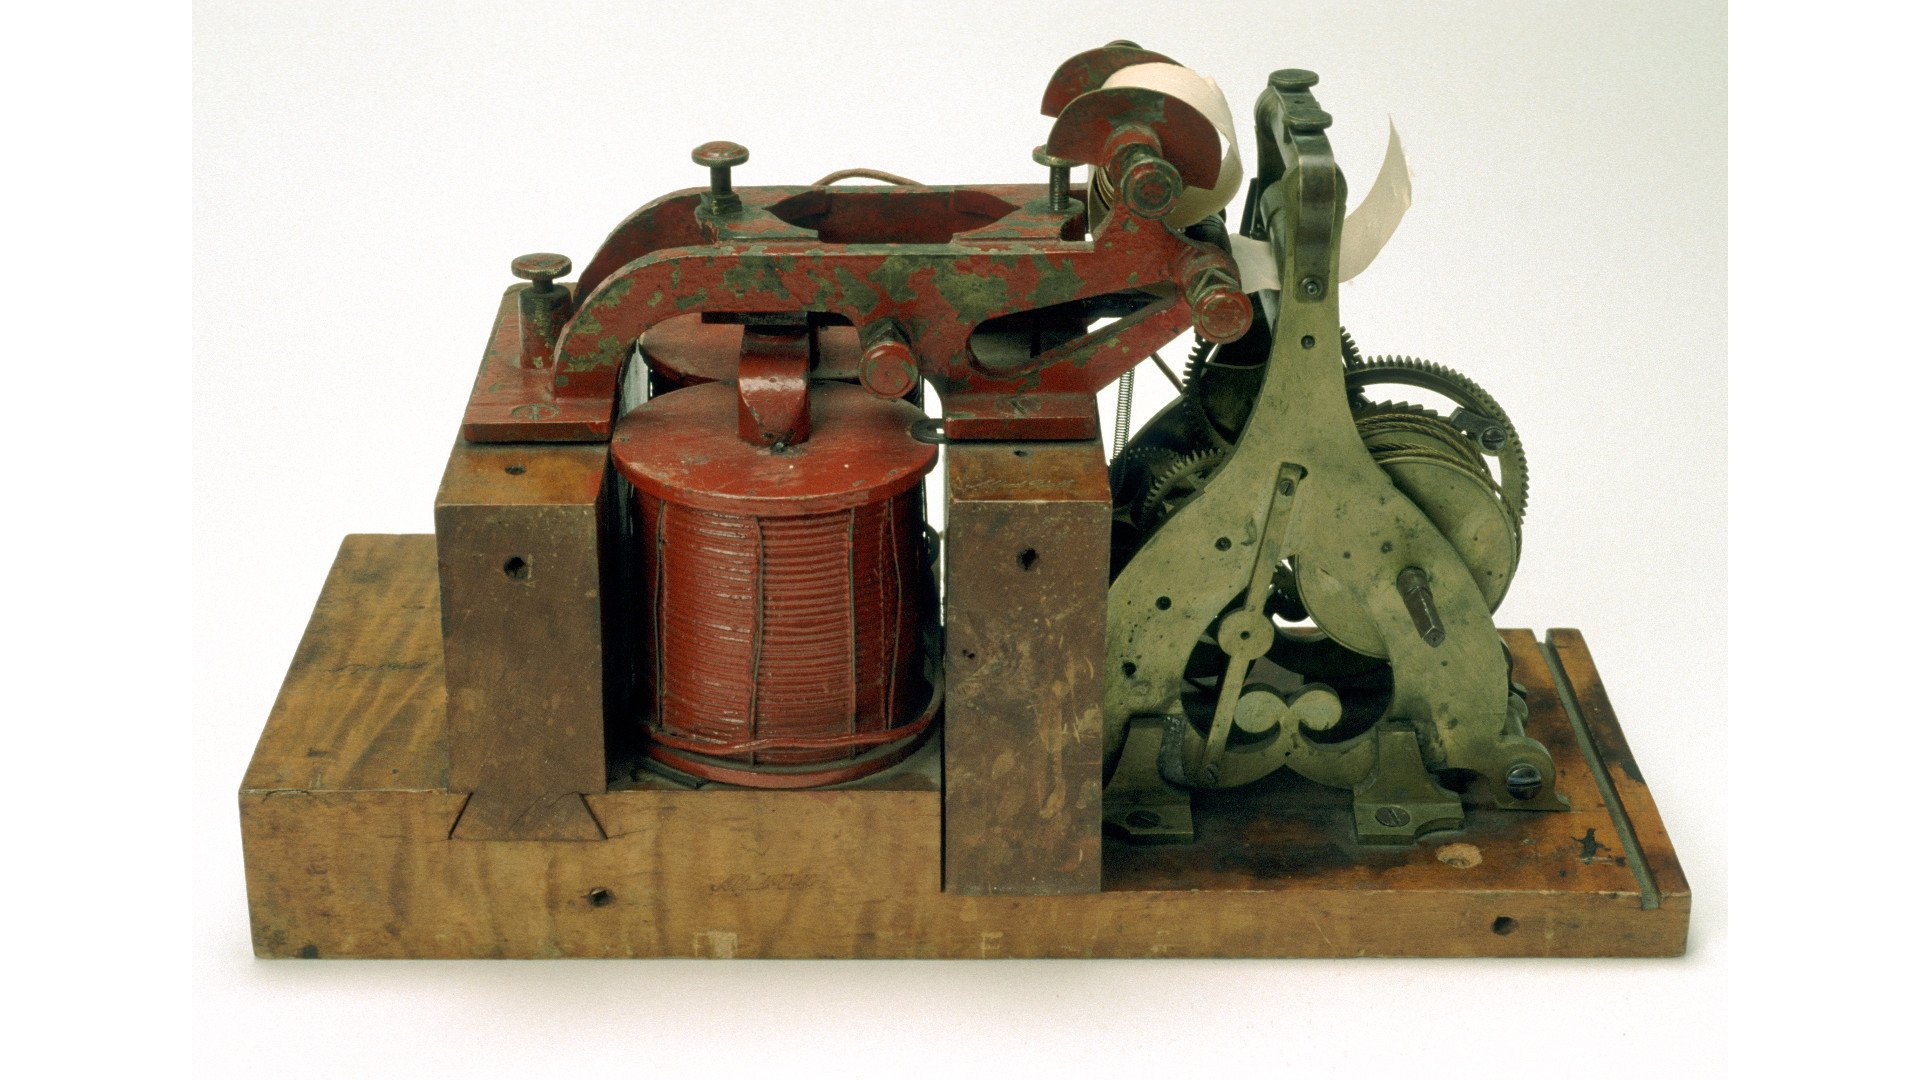 3D Printed Telegraph Replicates Ezra Cornell's 1844 Original | All3DP